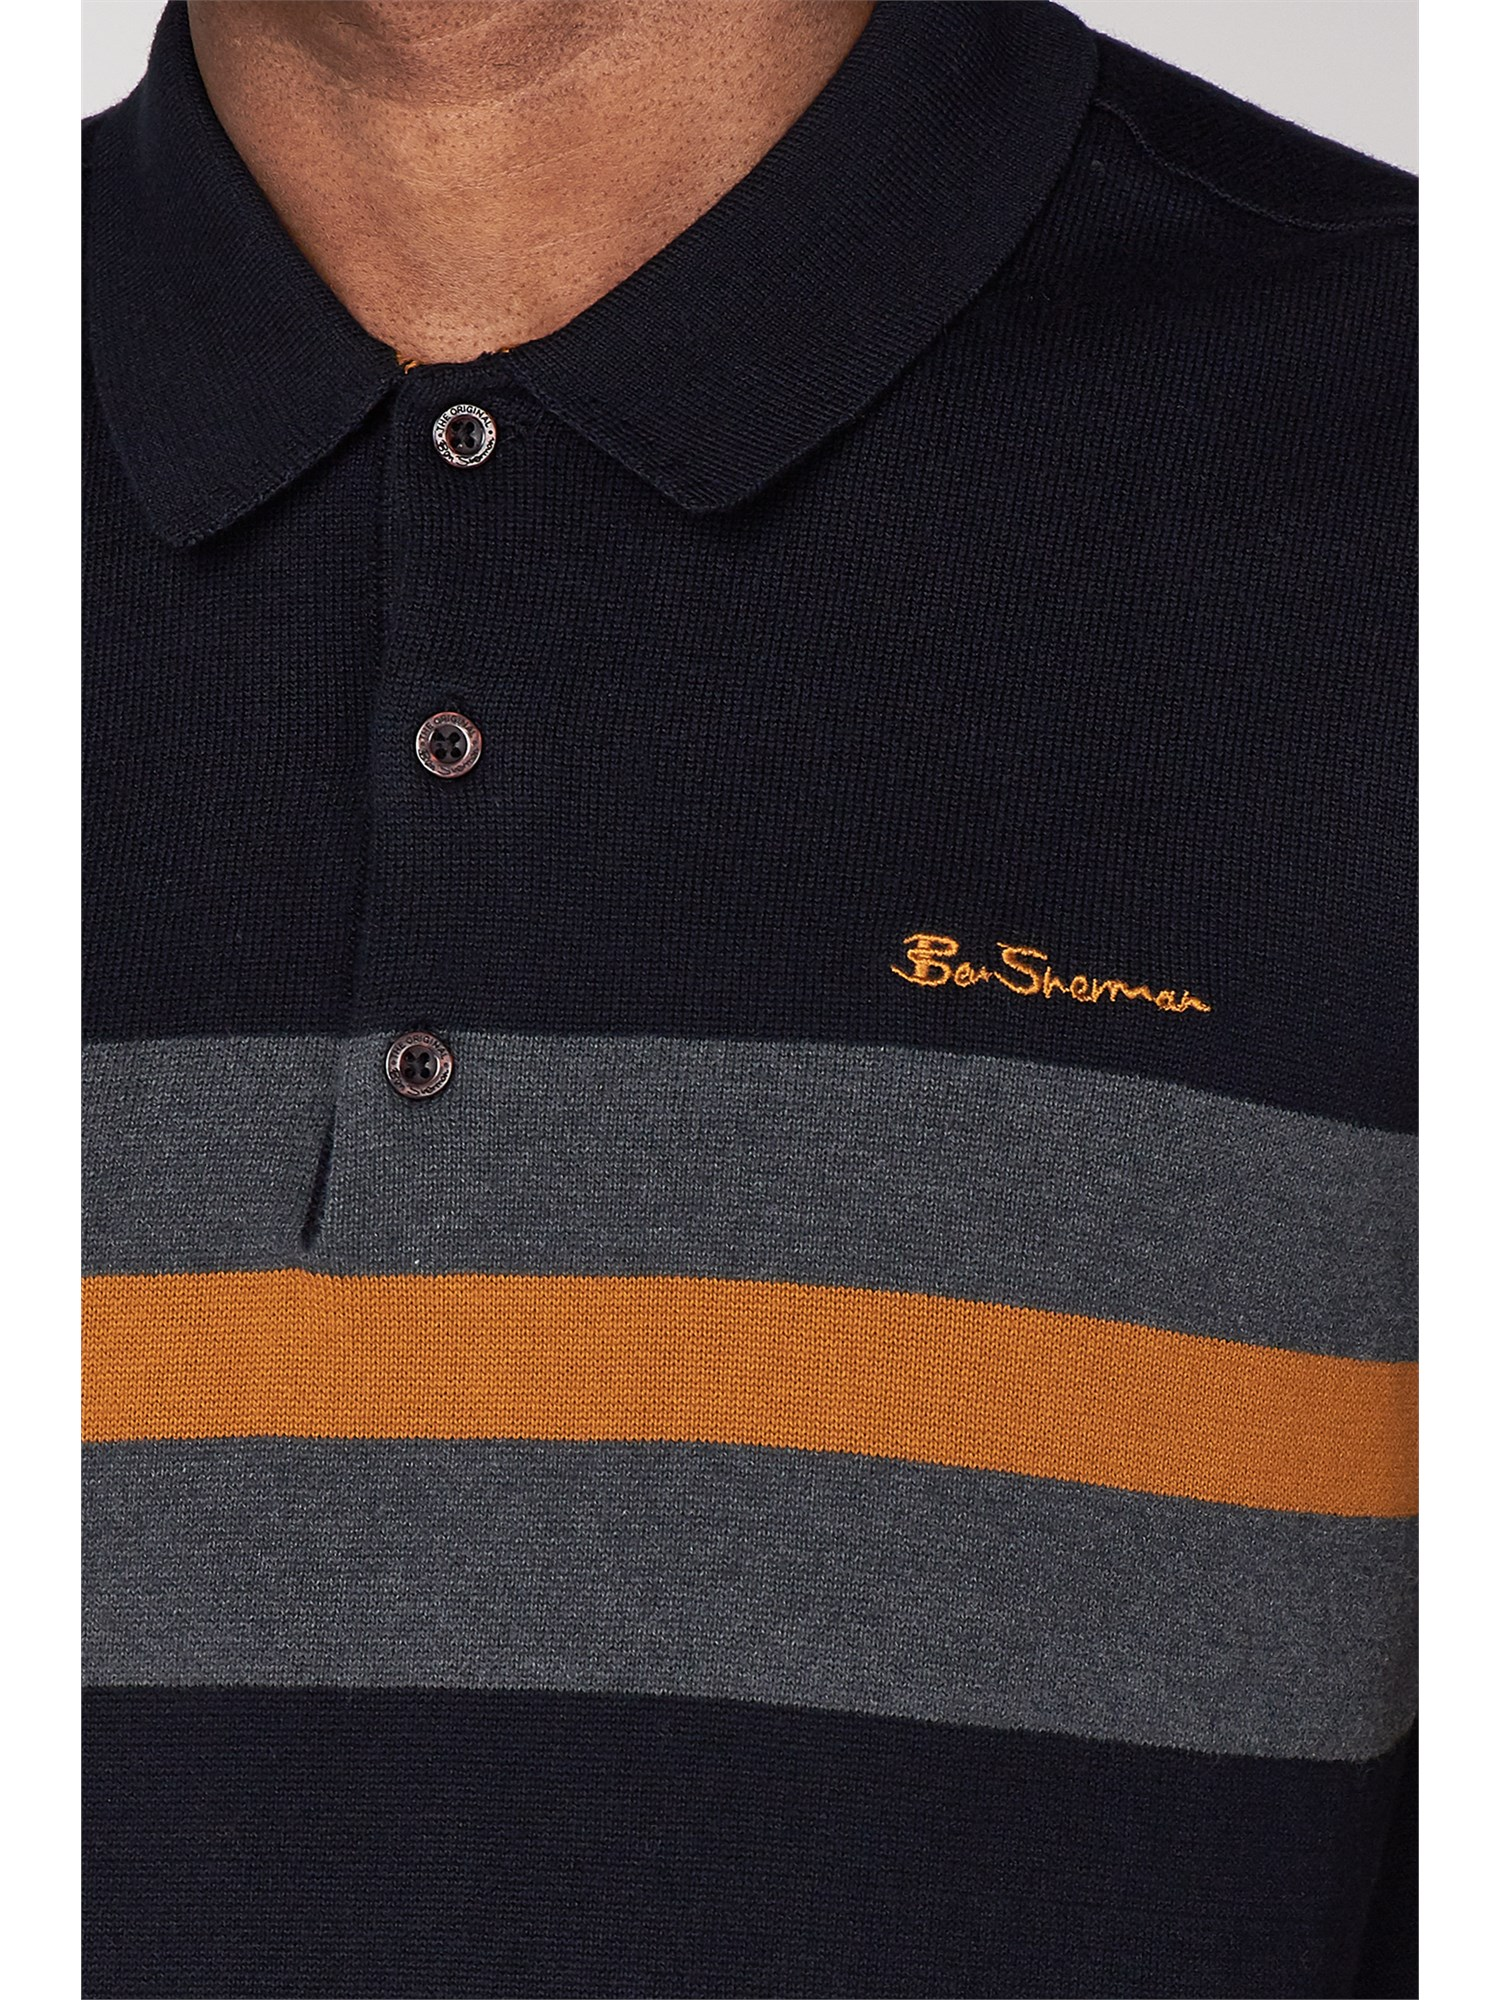 a54be3348ef Ben Sherman | Black & Orange Knitted Polo Shirt | Suit Direct